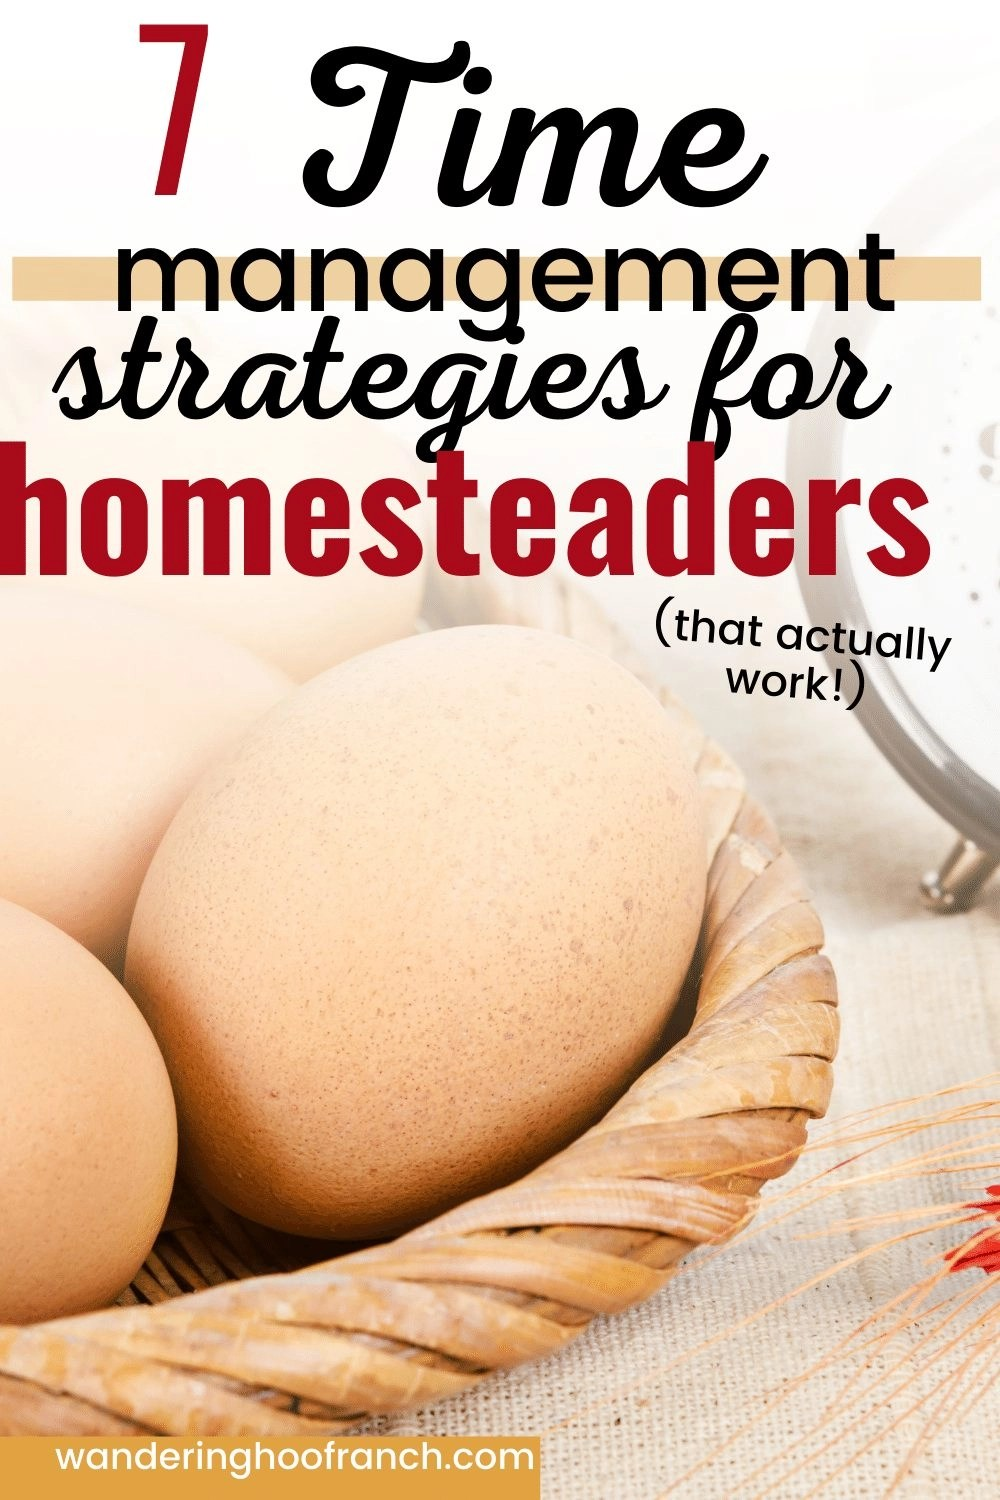 time management strategies for homesteaders Pinterest image basket of eggs and a clock in the background